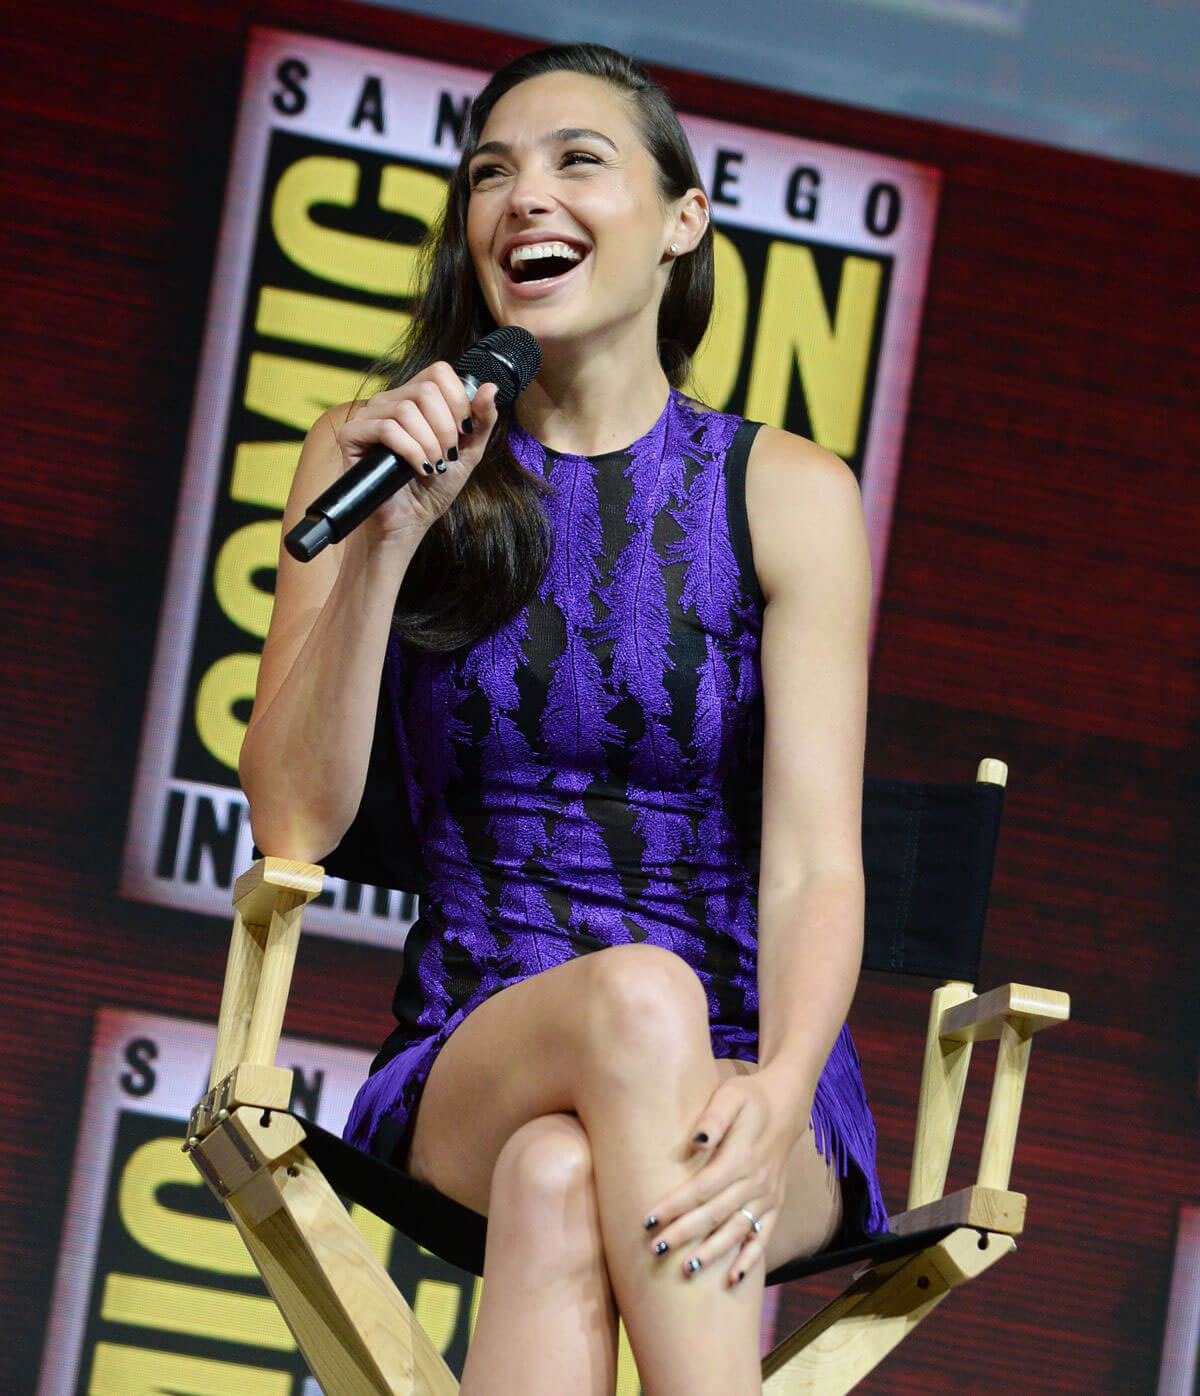 Gal Gadot Warner Bros Panel at Comic-Con 2018 in San Diego 2018/07/21 1